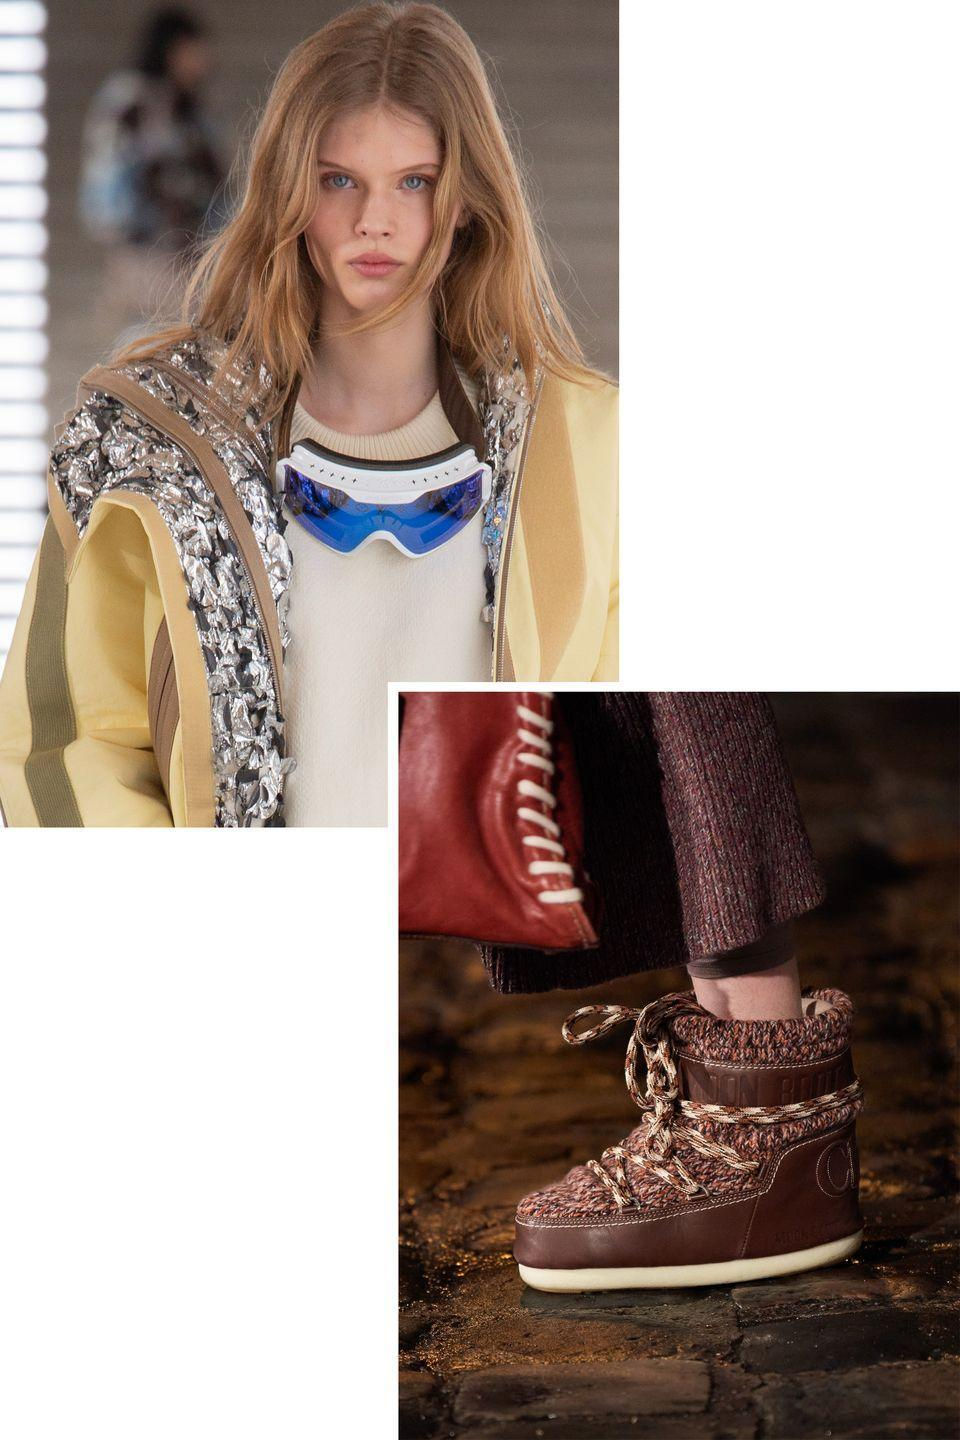 <p>Ski accessories come down the slope and become Fall's most unexpected wardrobe pairing, lending an instant sporty touch. </p><p><strong>Insider tip: </strong>Let one piece speak at a time for maximum impact.</p><p><em>Pictured: Miu Miu and Louis Vuitton</em></p>